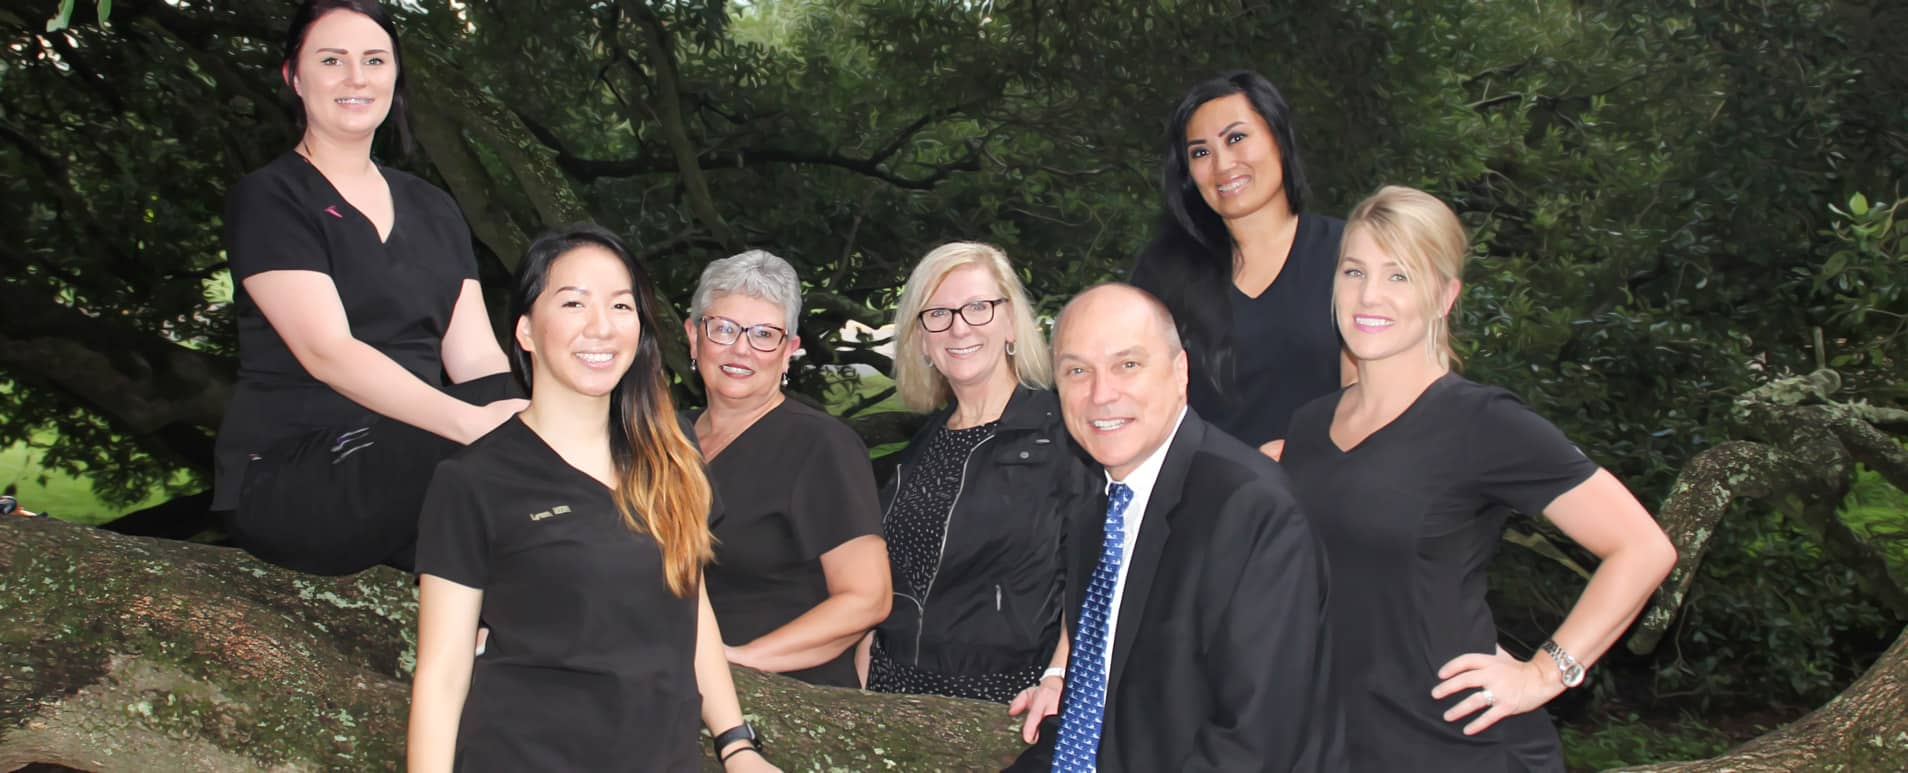 Brooksher Dental Team